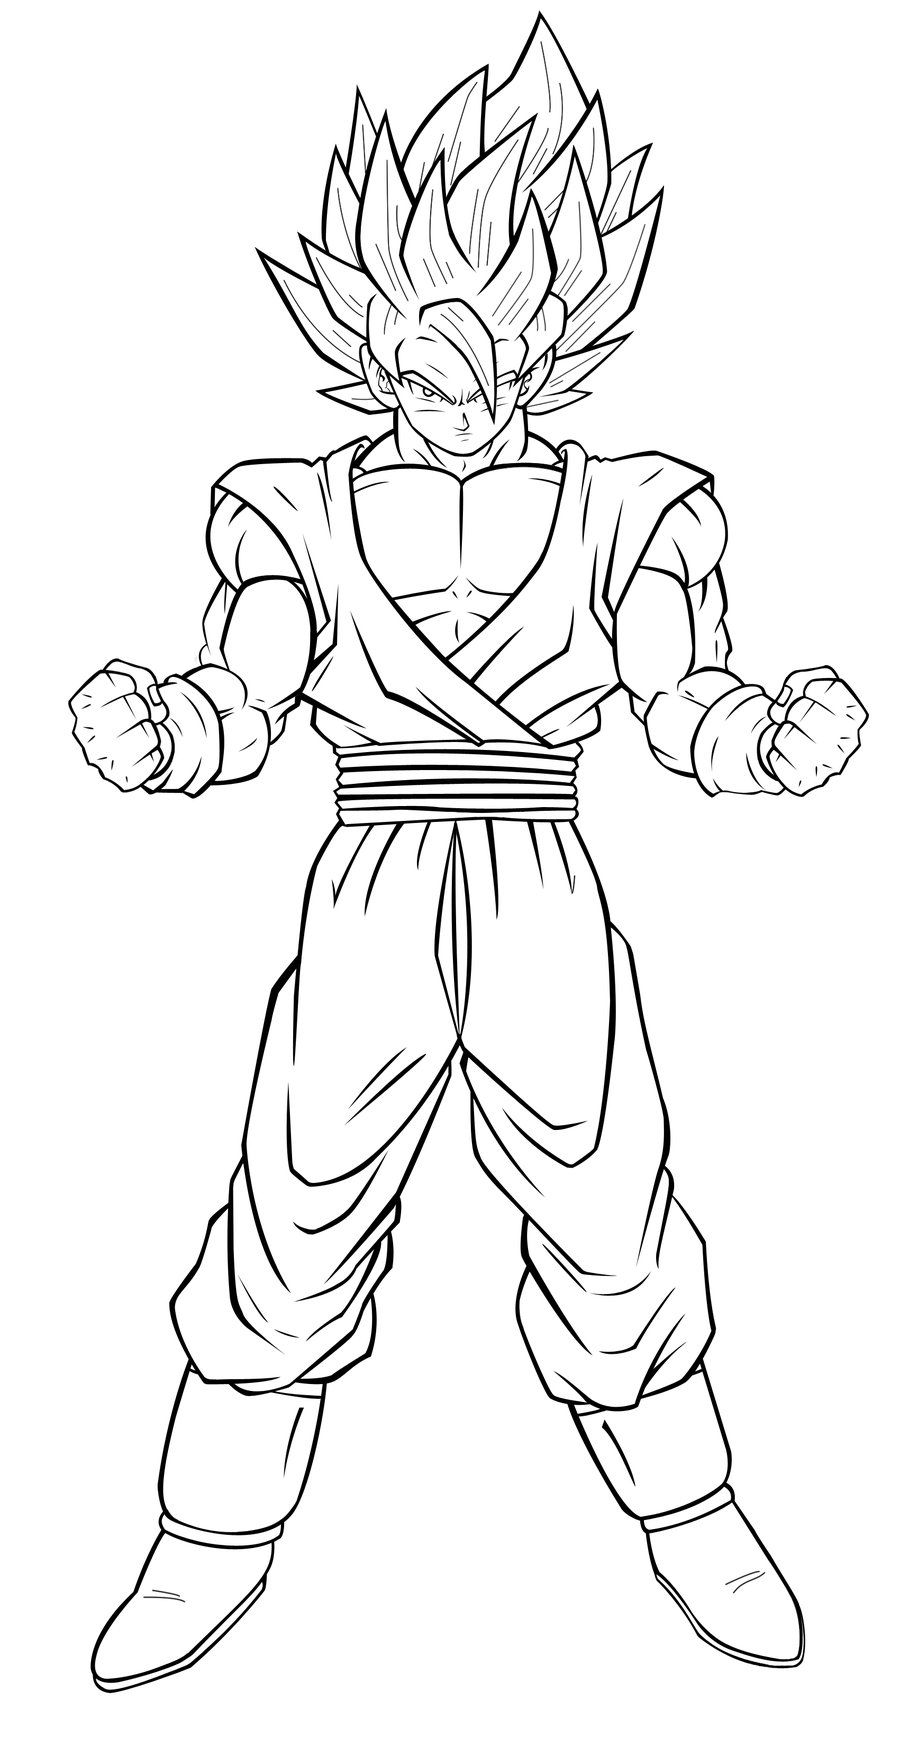 Coloriage dragon ball z sangoku super sayen 3 dragon ball z coloriage dragon ball coloriage - Coloriage dragon ball z sangoku ...